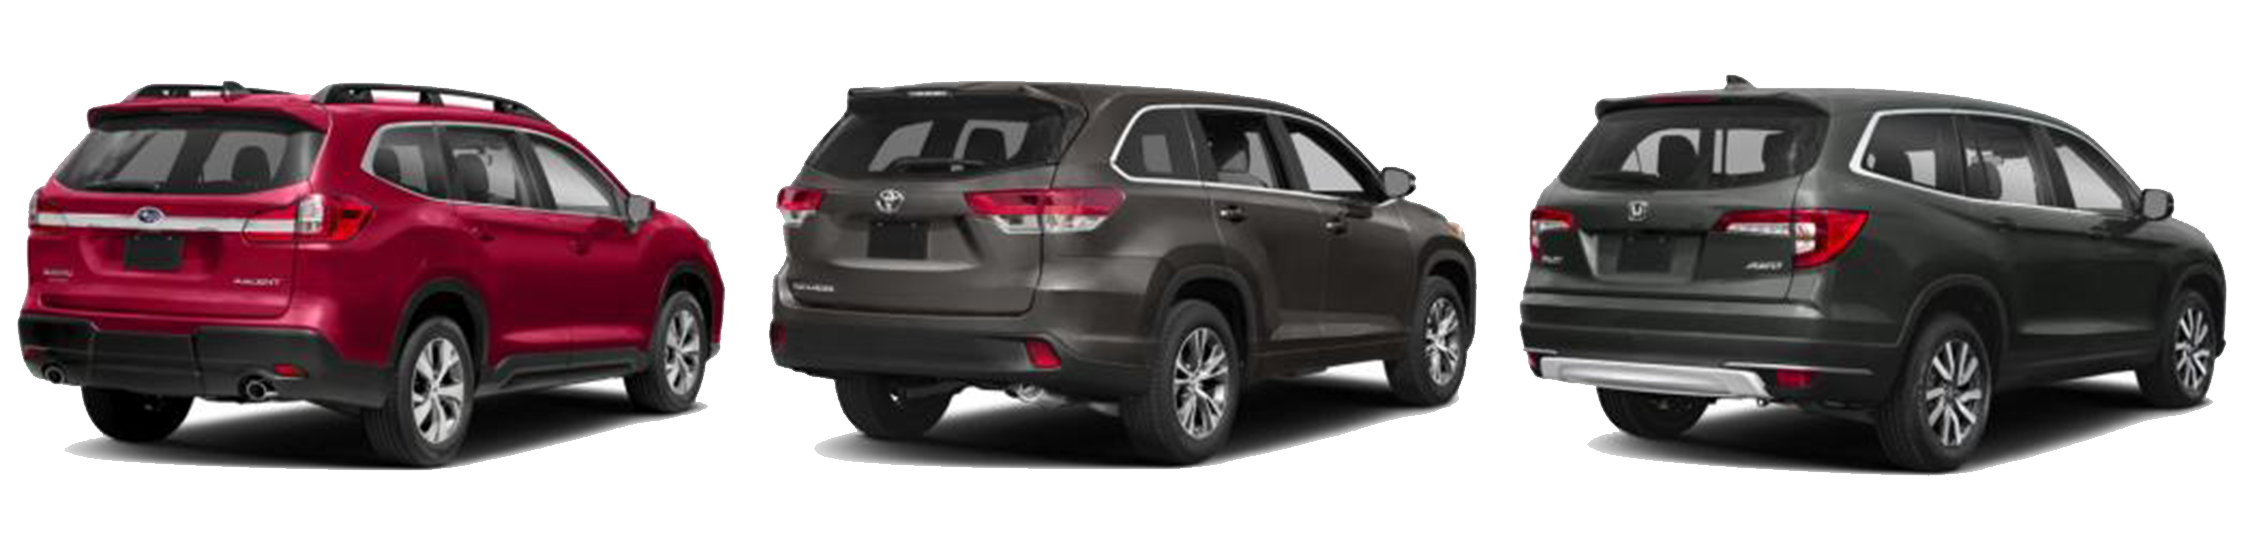 Honda Pilot Vs Subaru Outback >> Subaru Ascent Vs Toyota Highlander And Honda Pilot